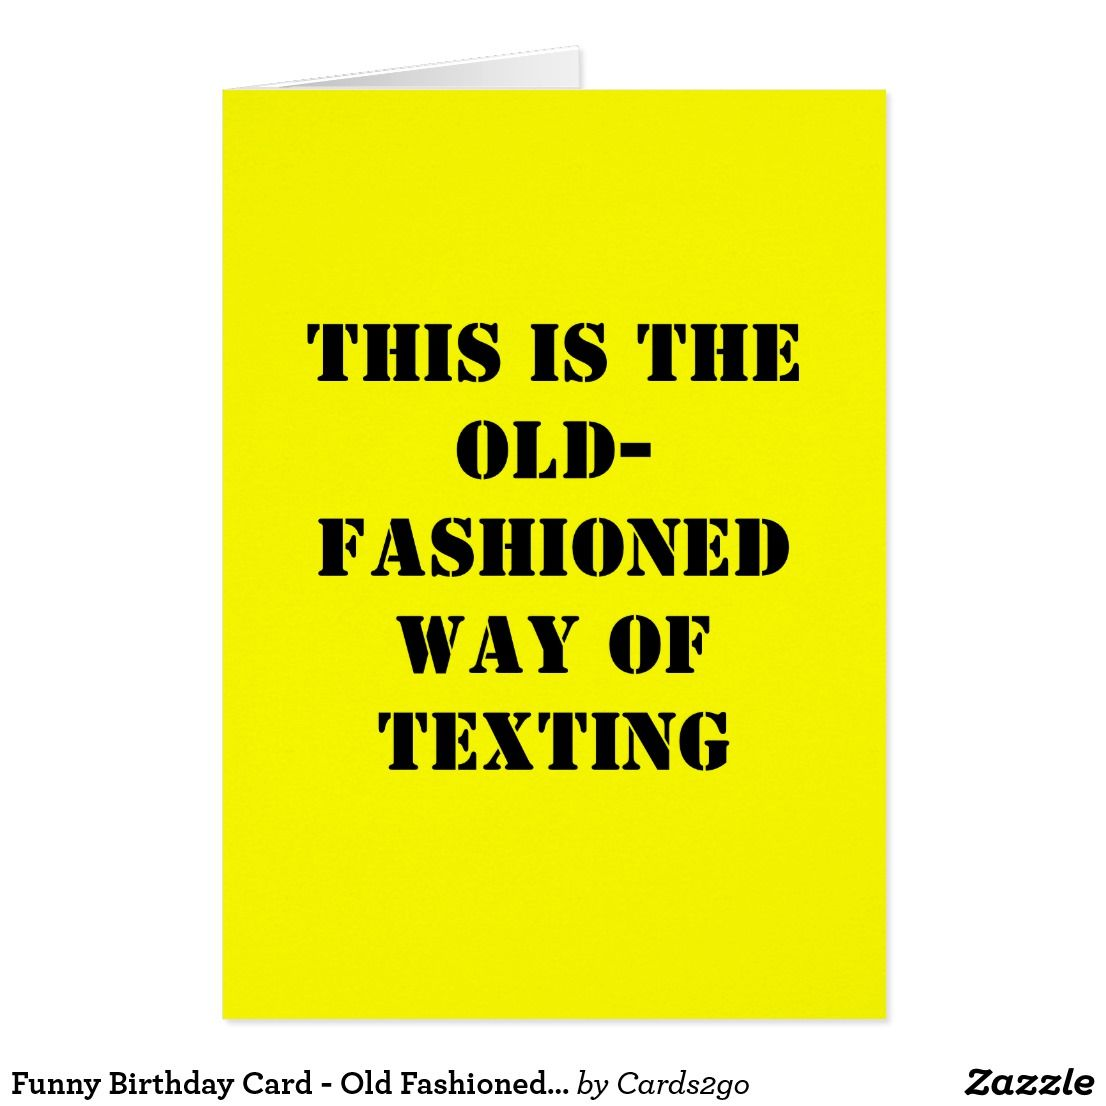 Funny birthday card old fashioned texting texting and funny birthday funny birthday card old fashioned texting bookmarktalkfo Gallery